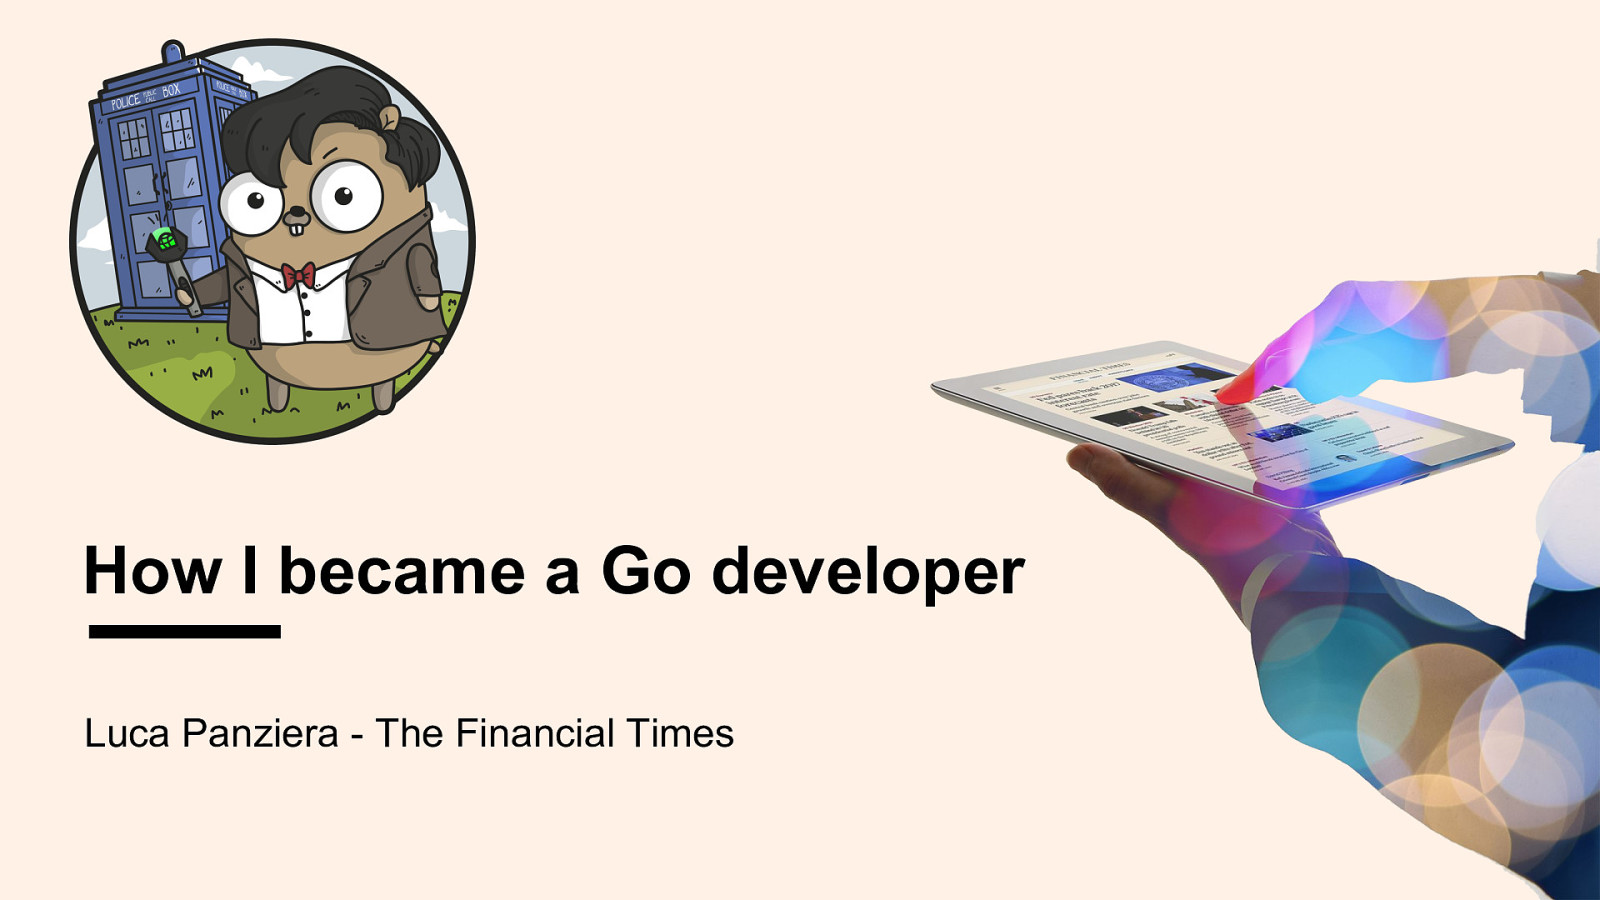 How I became a Go developer